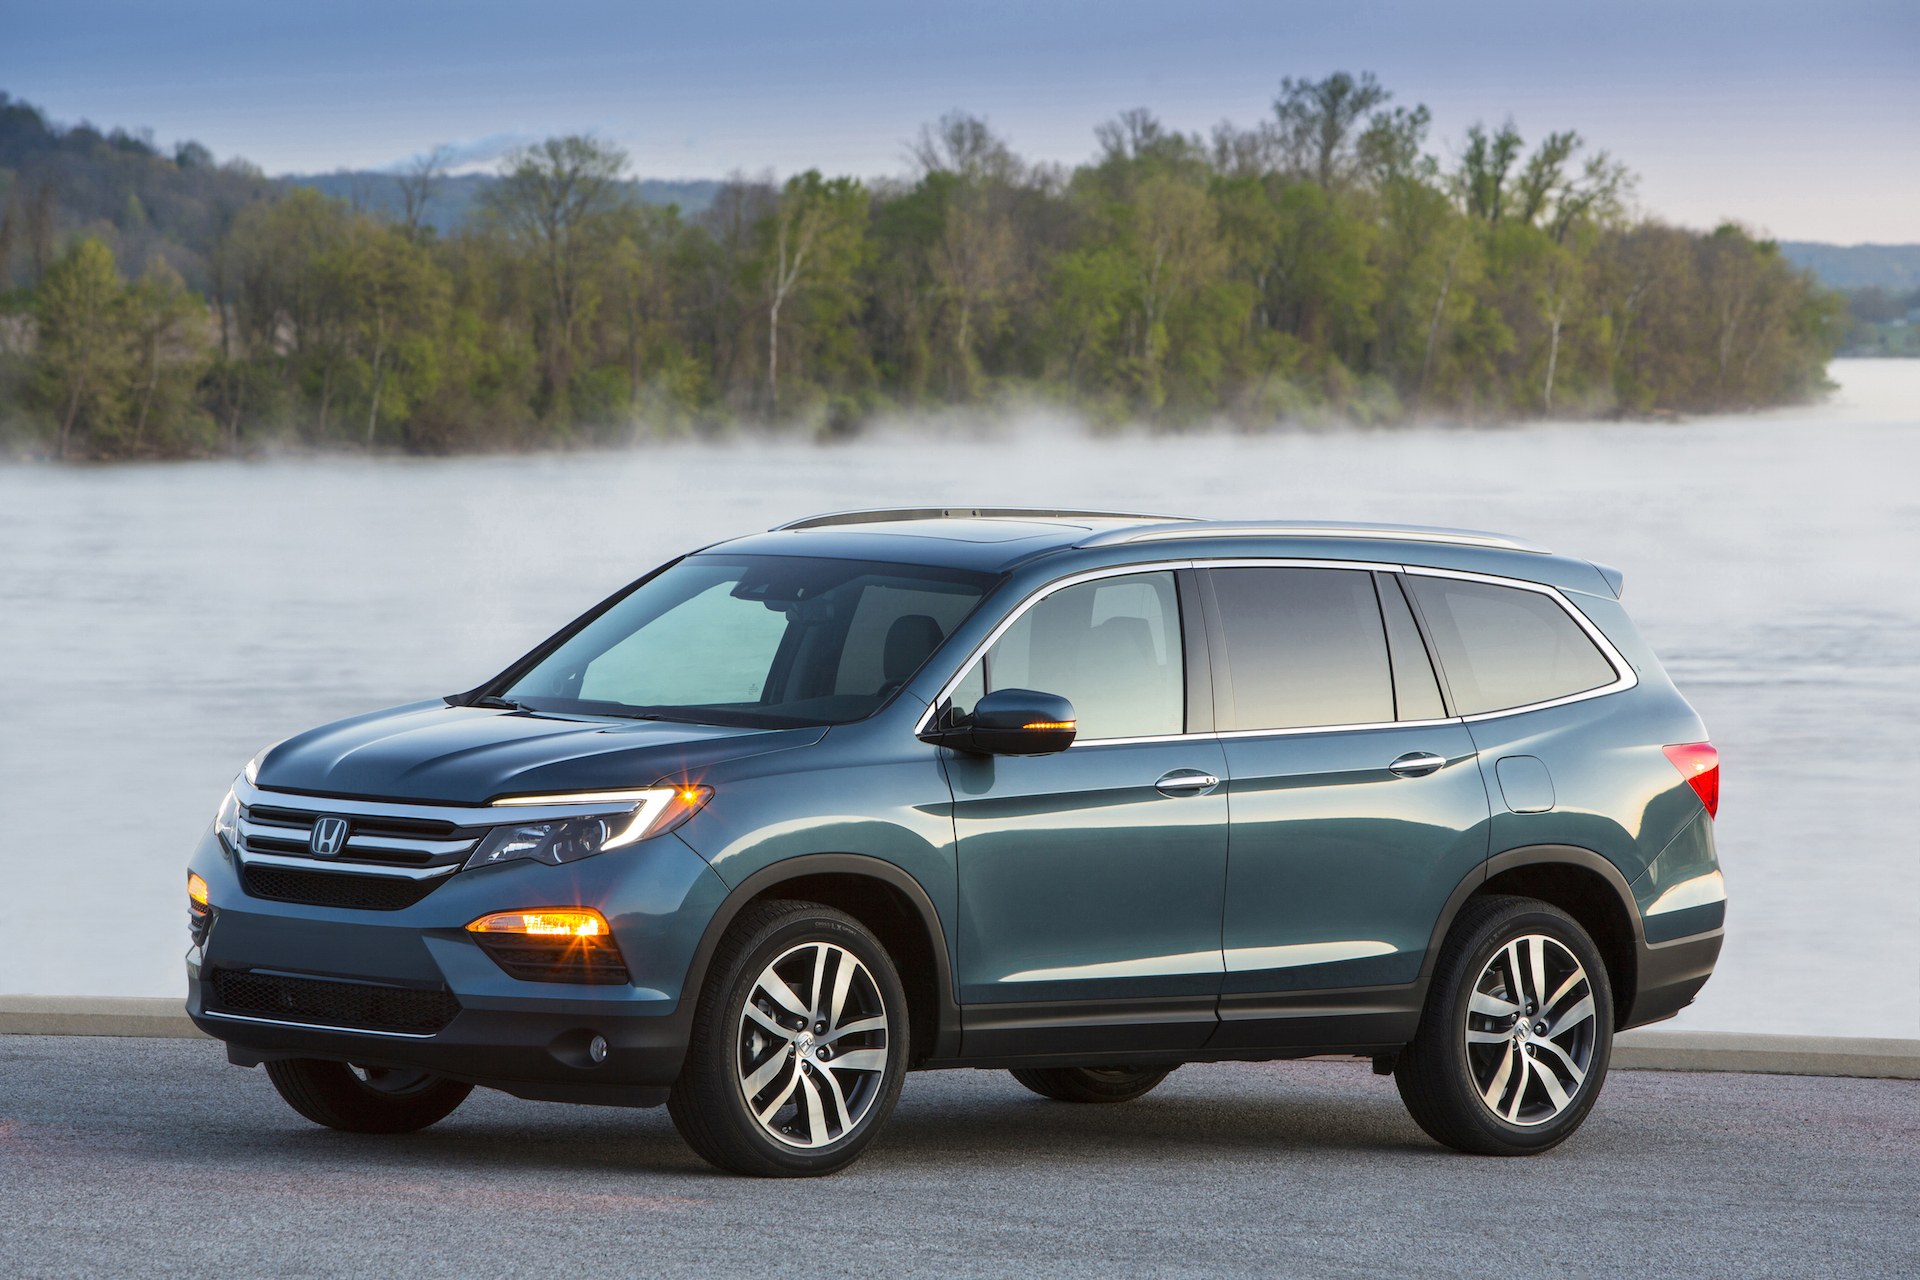 2017 Honda Pilot Vs 2017 Ford Explorer Compare Cars